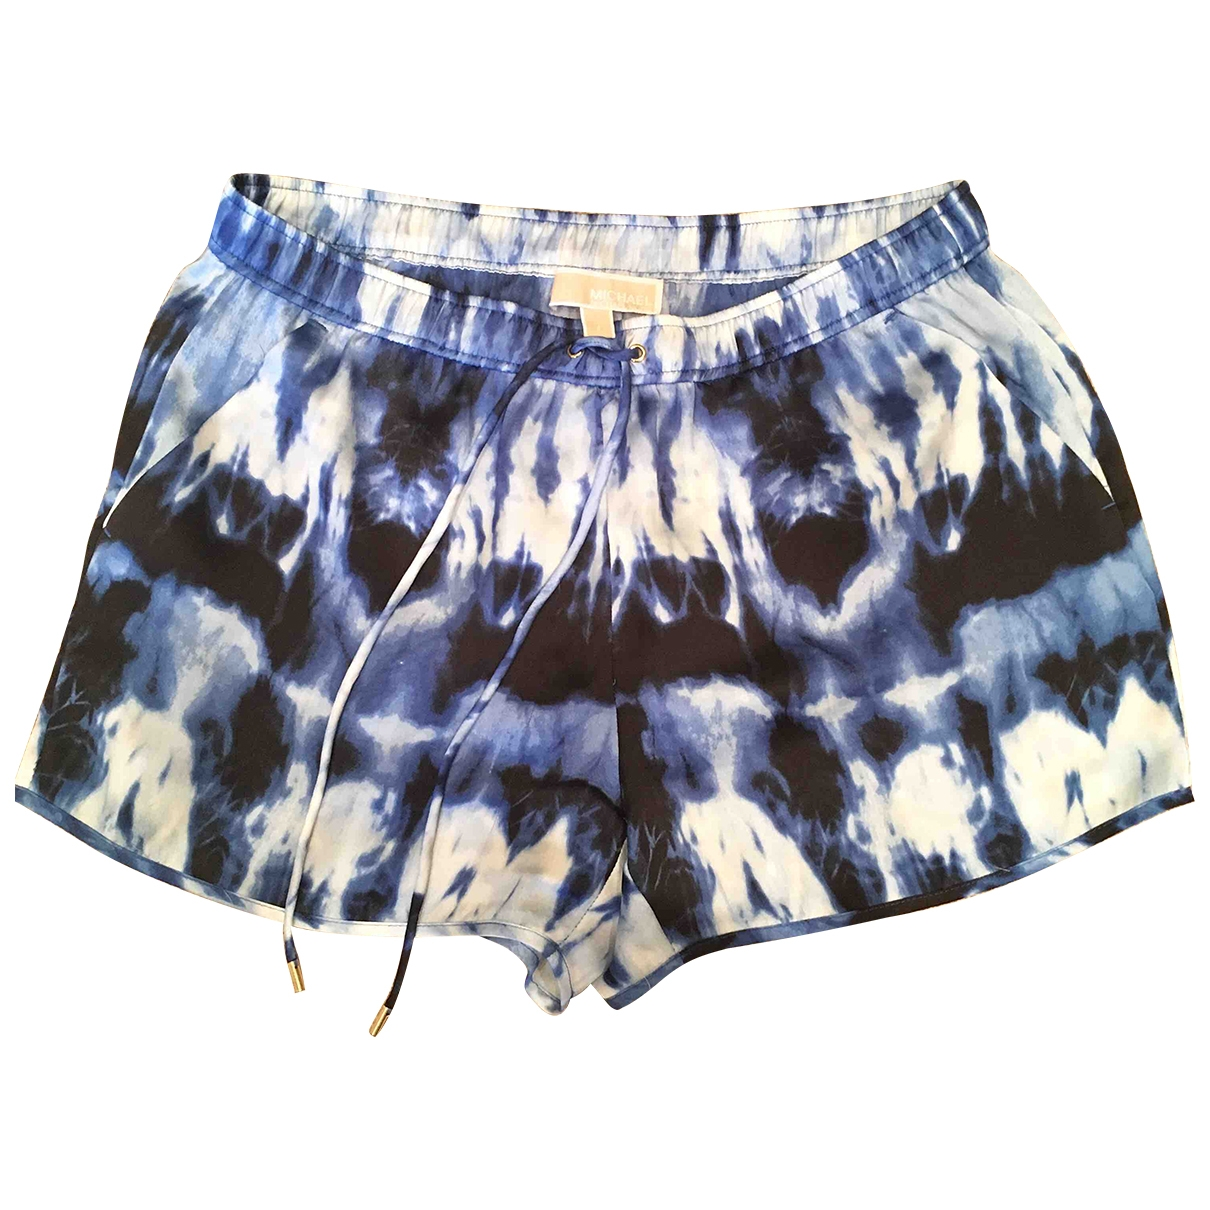 Michael Kors \N Blue Shorts for Women 4 US